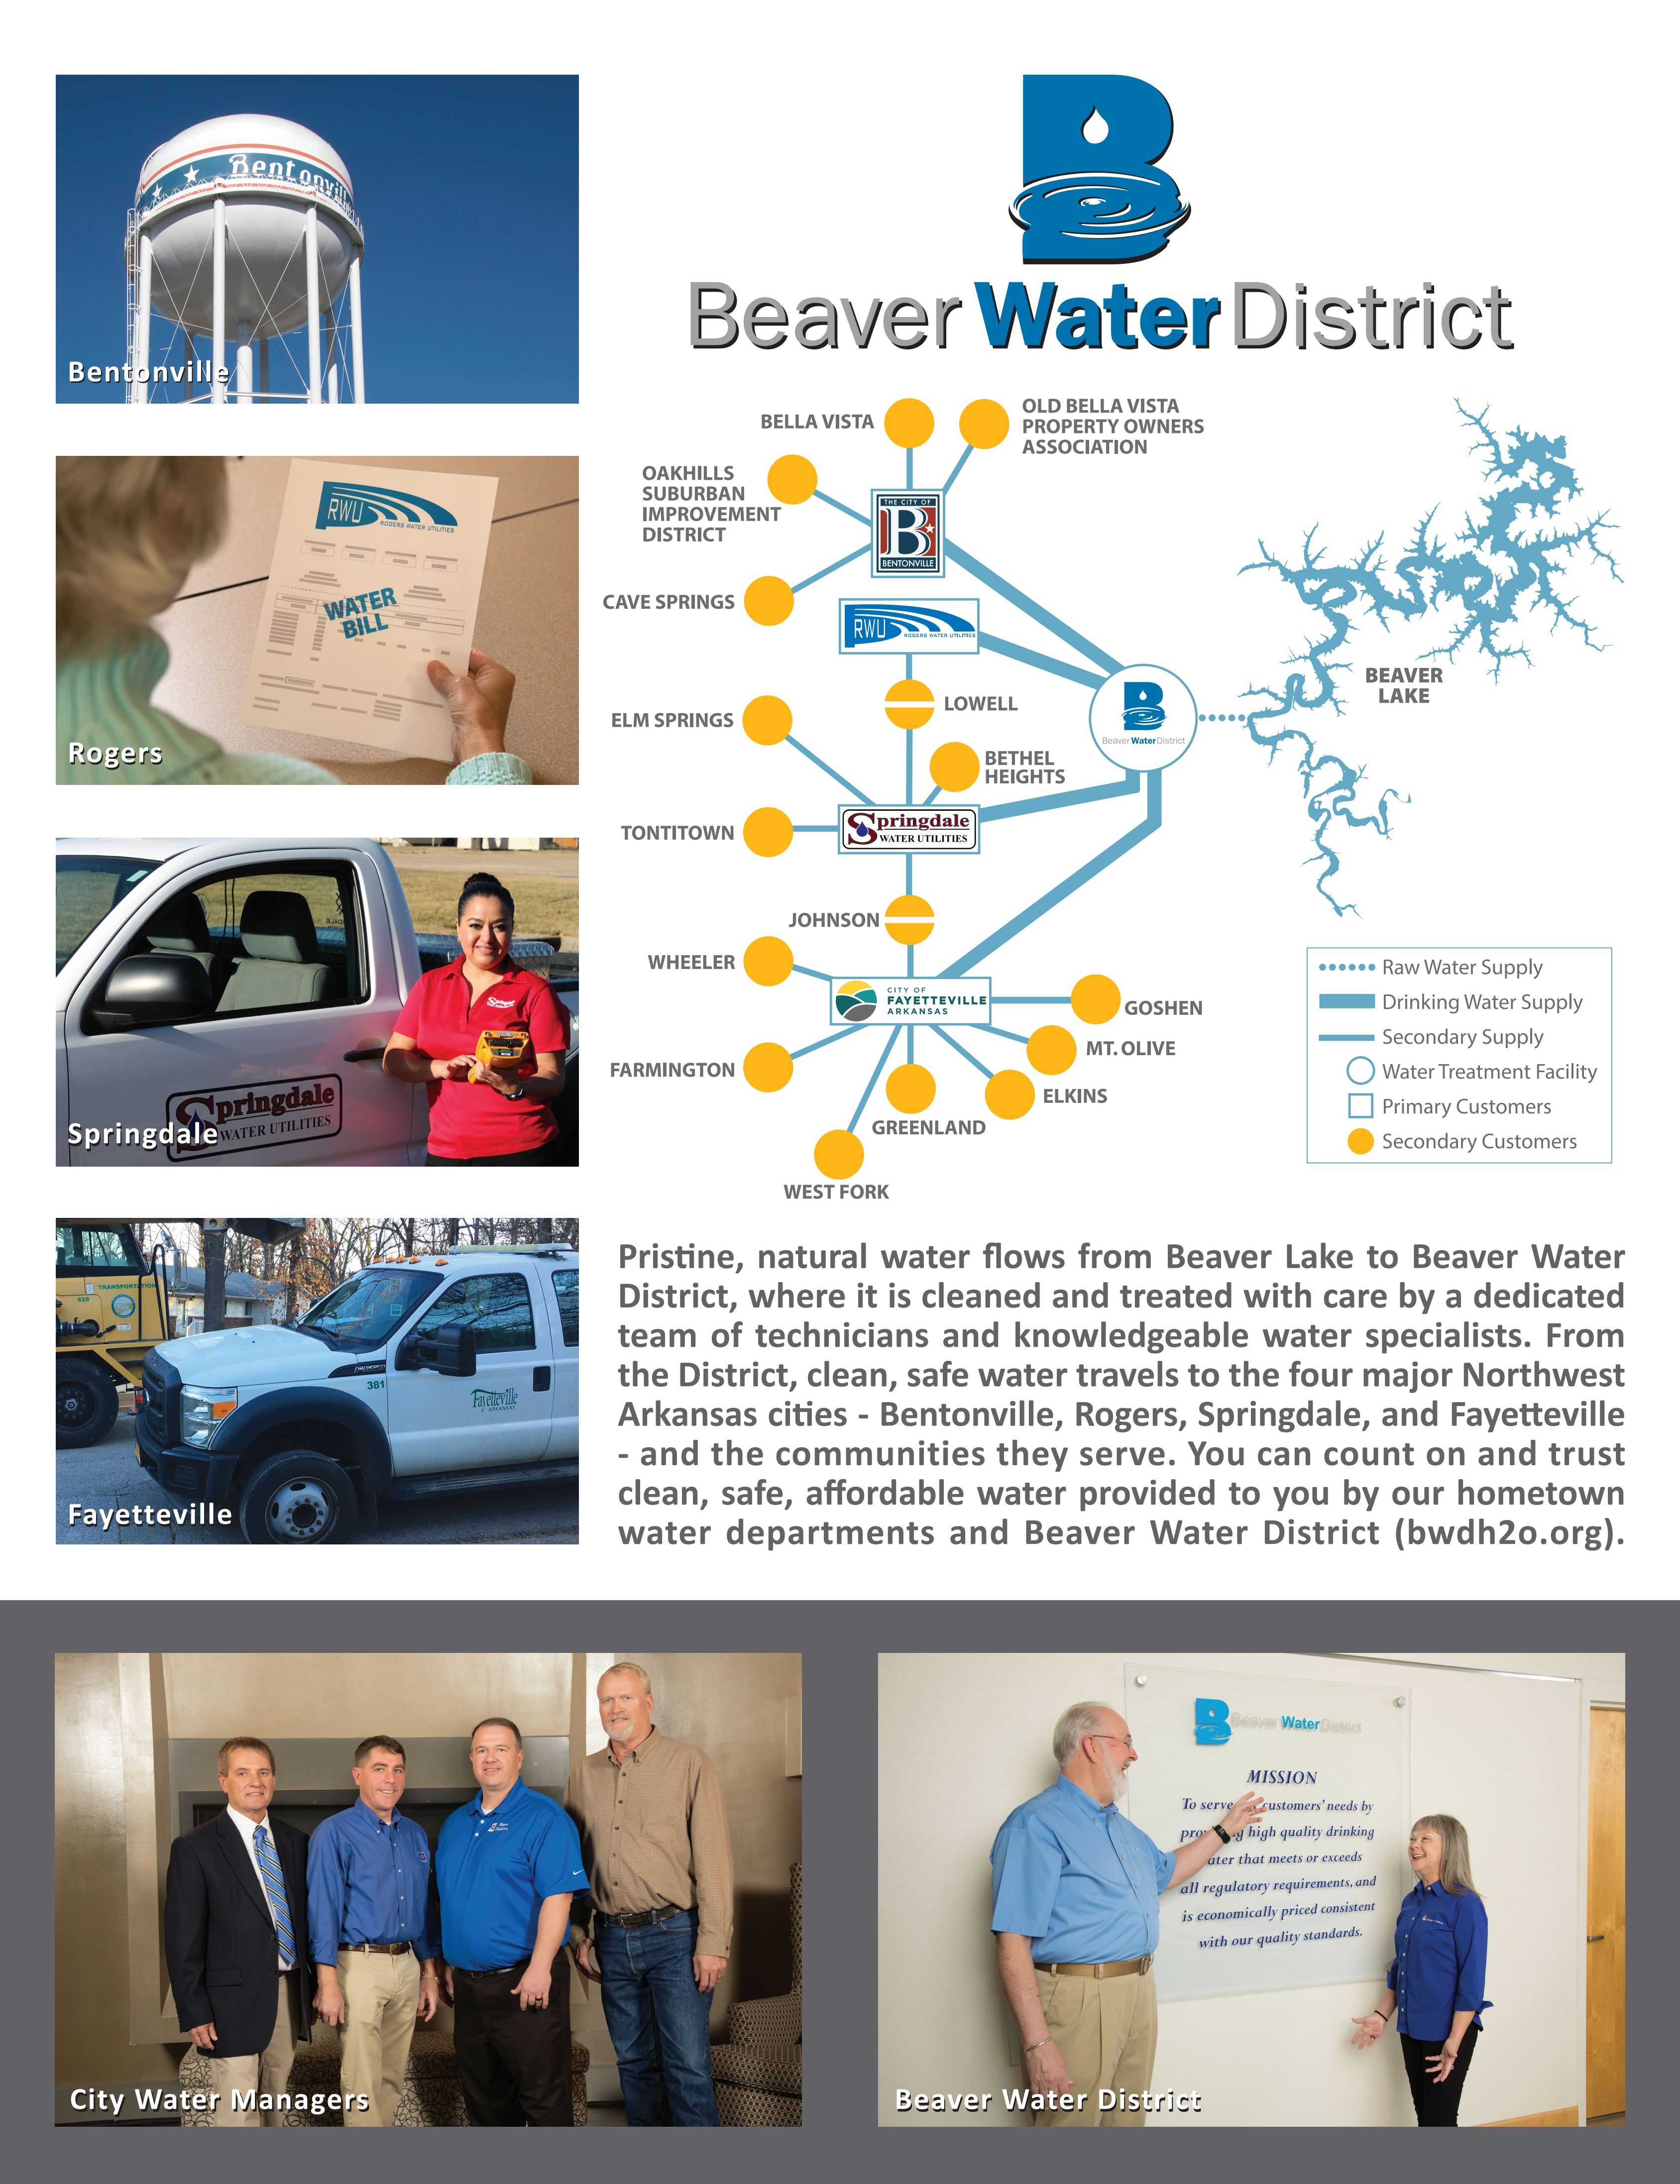 You can trust Beaver Water District and your local water utilities.